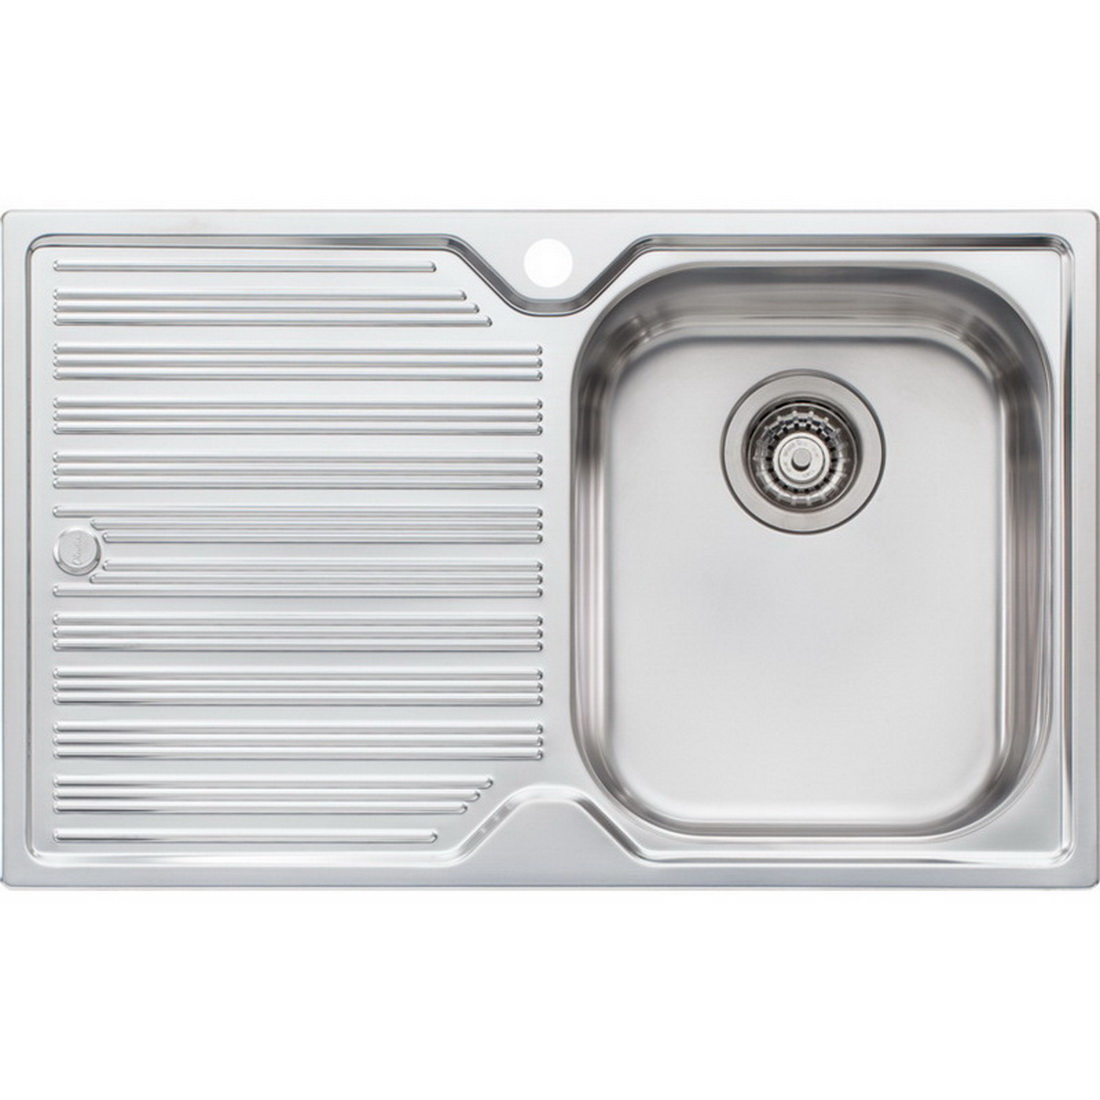 Diaz Single Sink Bowl with Drainer RHB 180 x 770 x 480 mm Topmount DZ122 NZ NTH OF